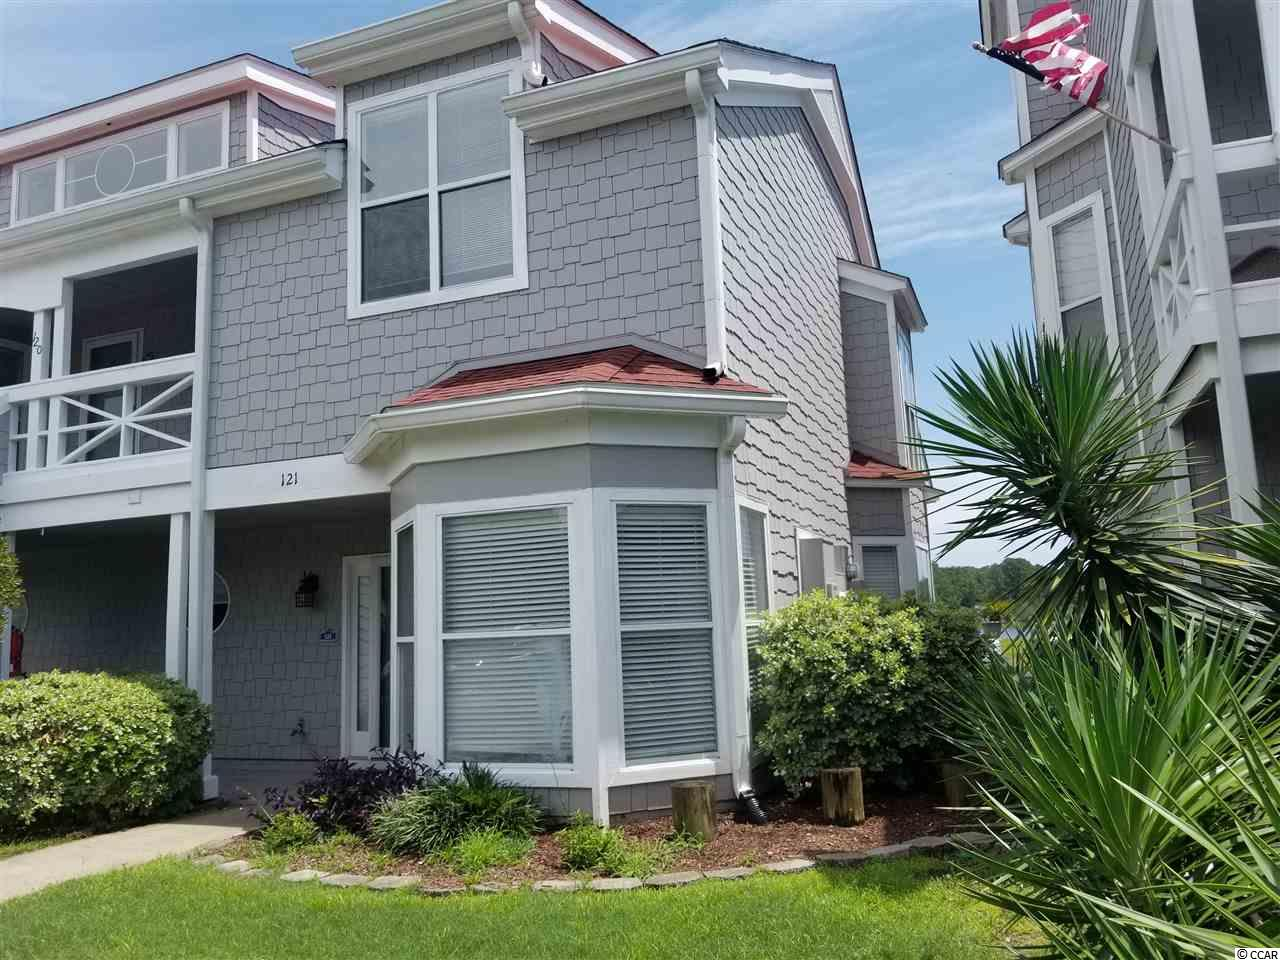 It is all about the waterway view!  Beautiful 3 bedroom, 2 - 1/2 bath townhouse that only needs your special refinements! 1st floor master! Wonderful marina community with pool, hot tub, and private lounge with fun community activities. Walking distance to Little River waterfront, home of Blue Crab Festival Shrimp Festival, Big M Casino boat, Patio's, Crab Catcher's, Capt Jewels, etc!  40' boat slip also available!